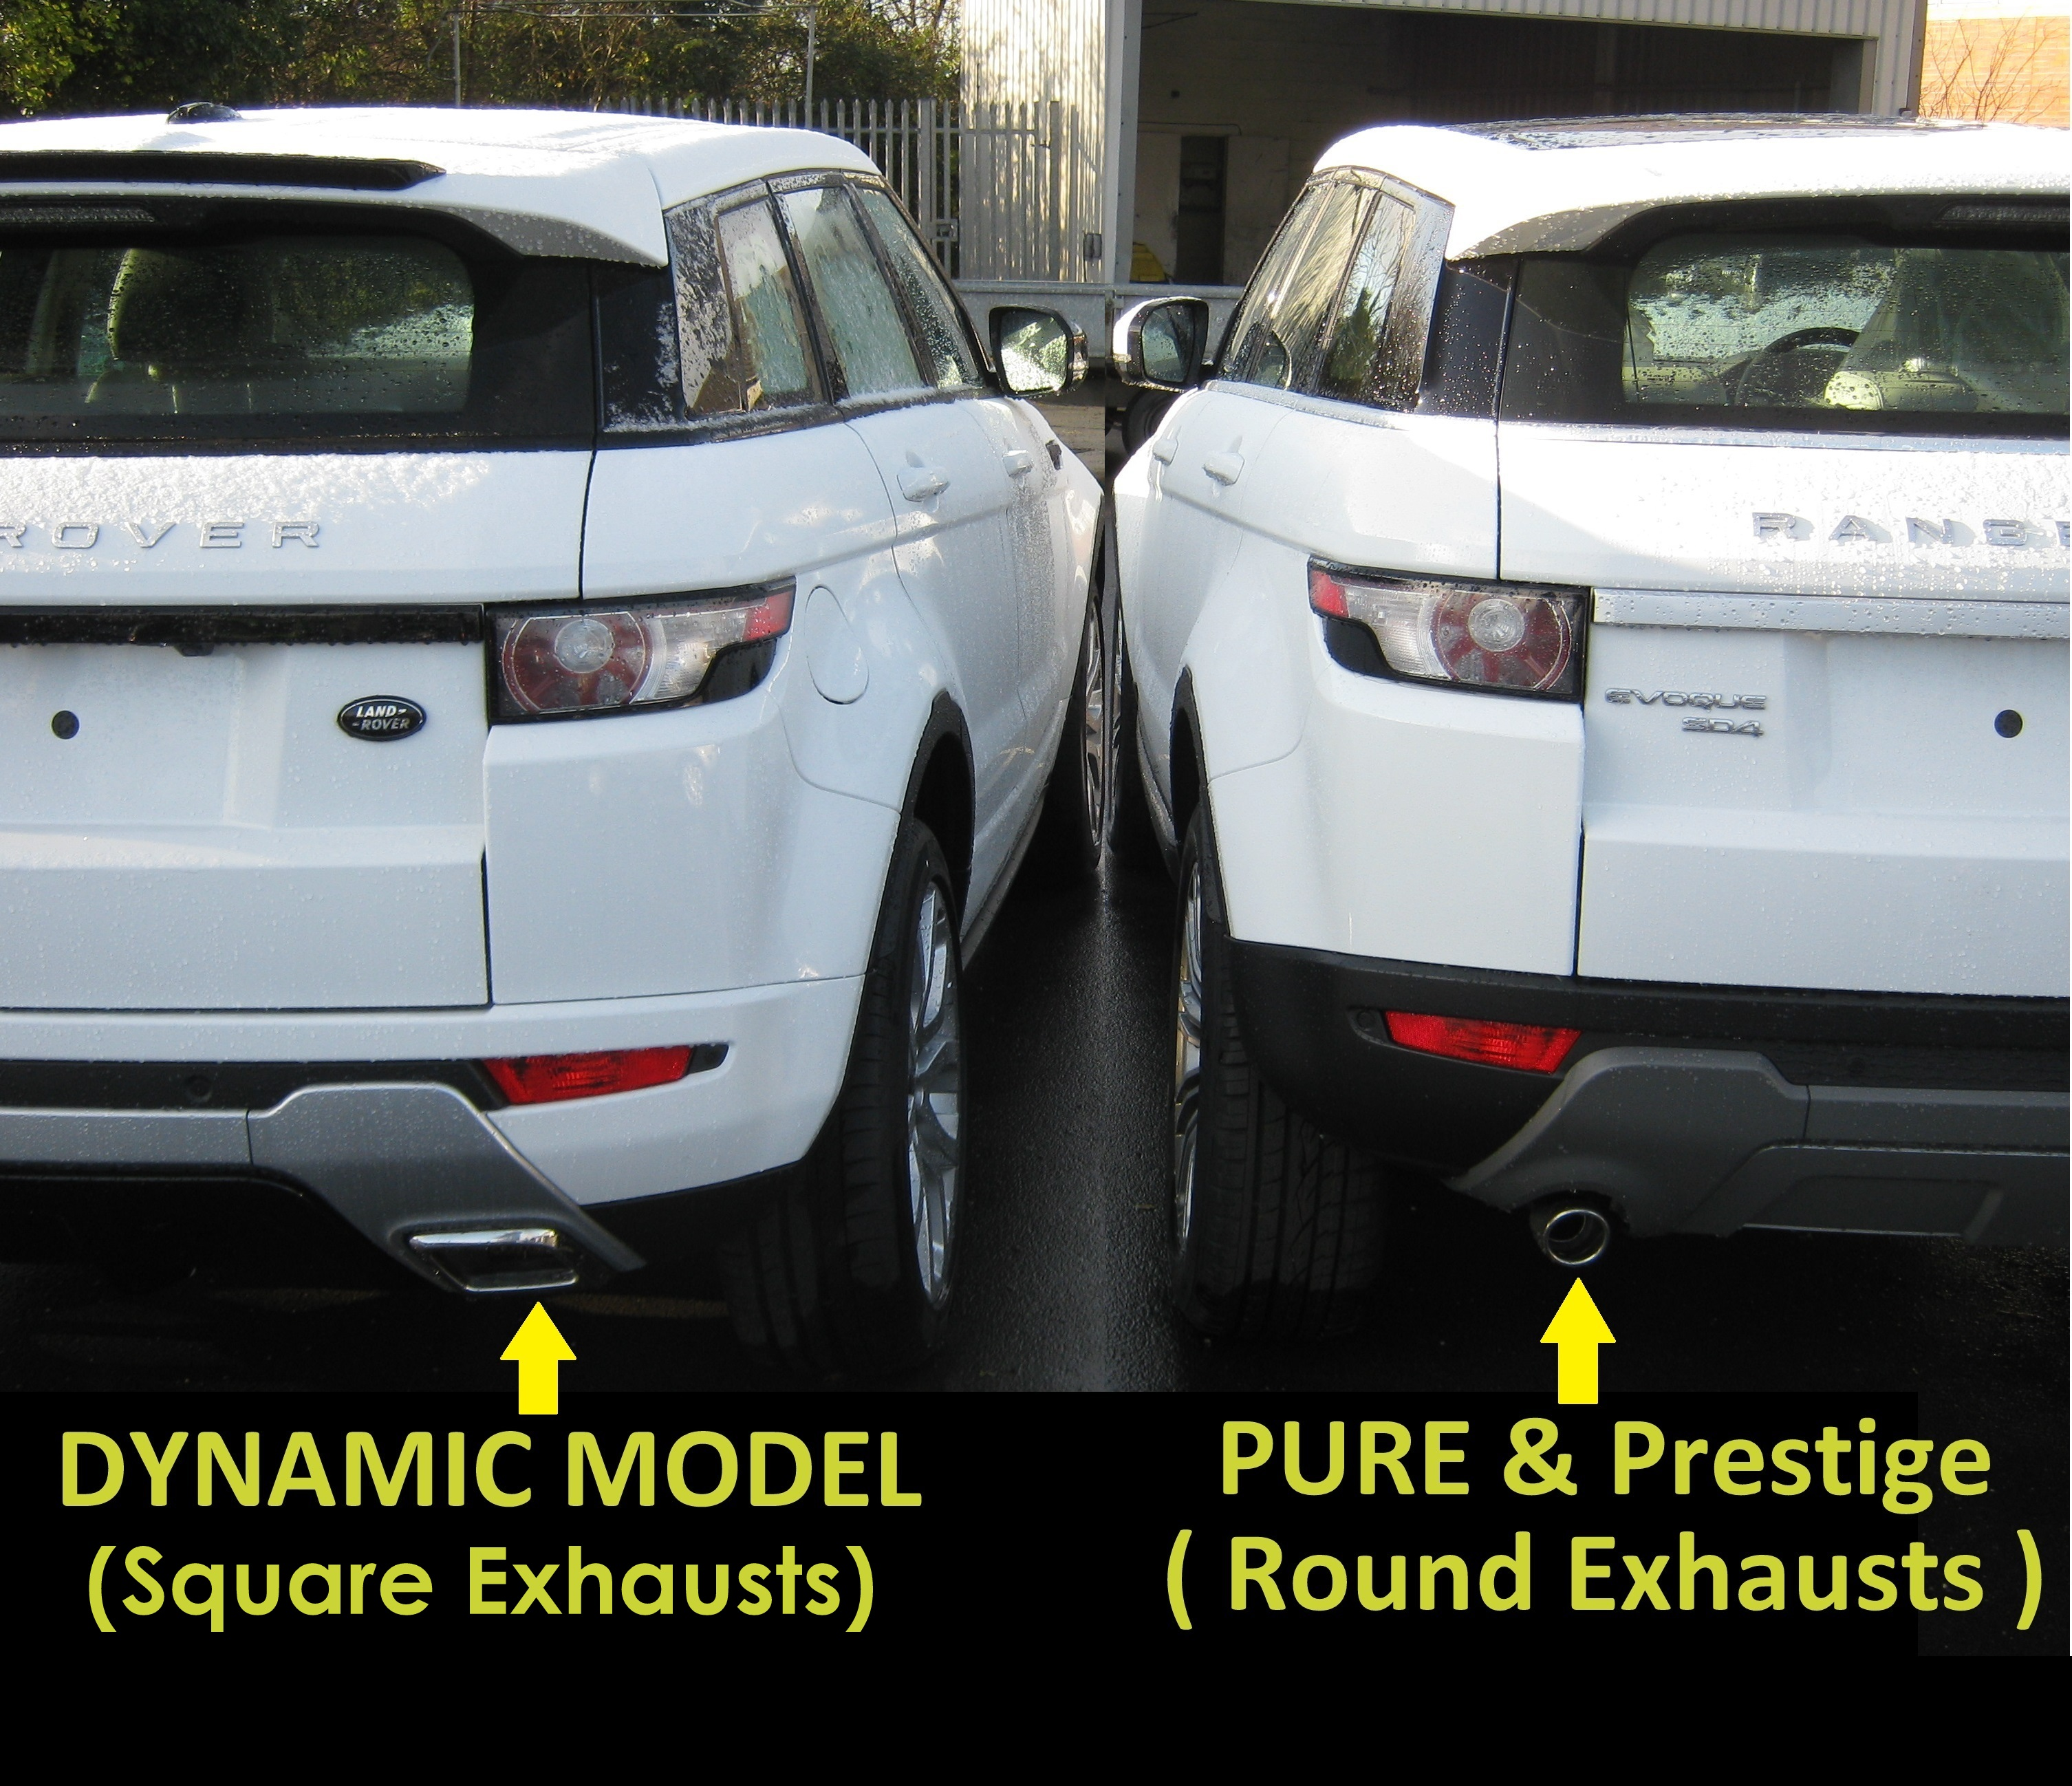 hills rangeroverevoque land range manual details evoque second vehicle breakers online car ltd hand rover salvage landrover parts recycling diesel used